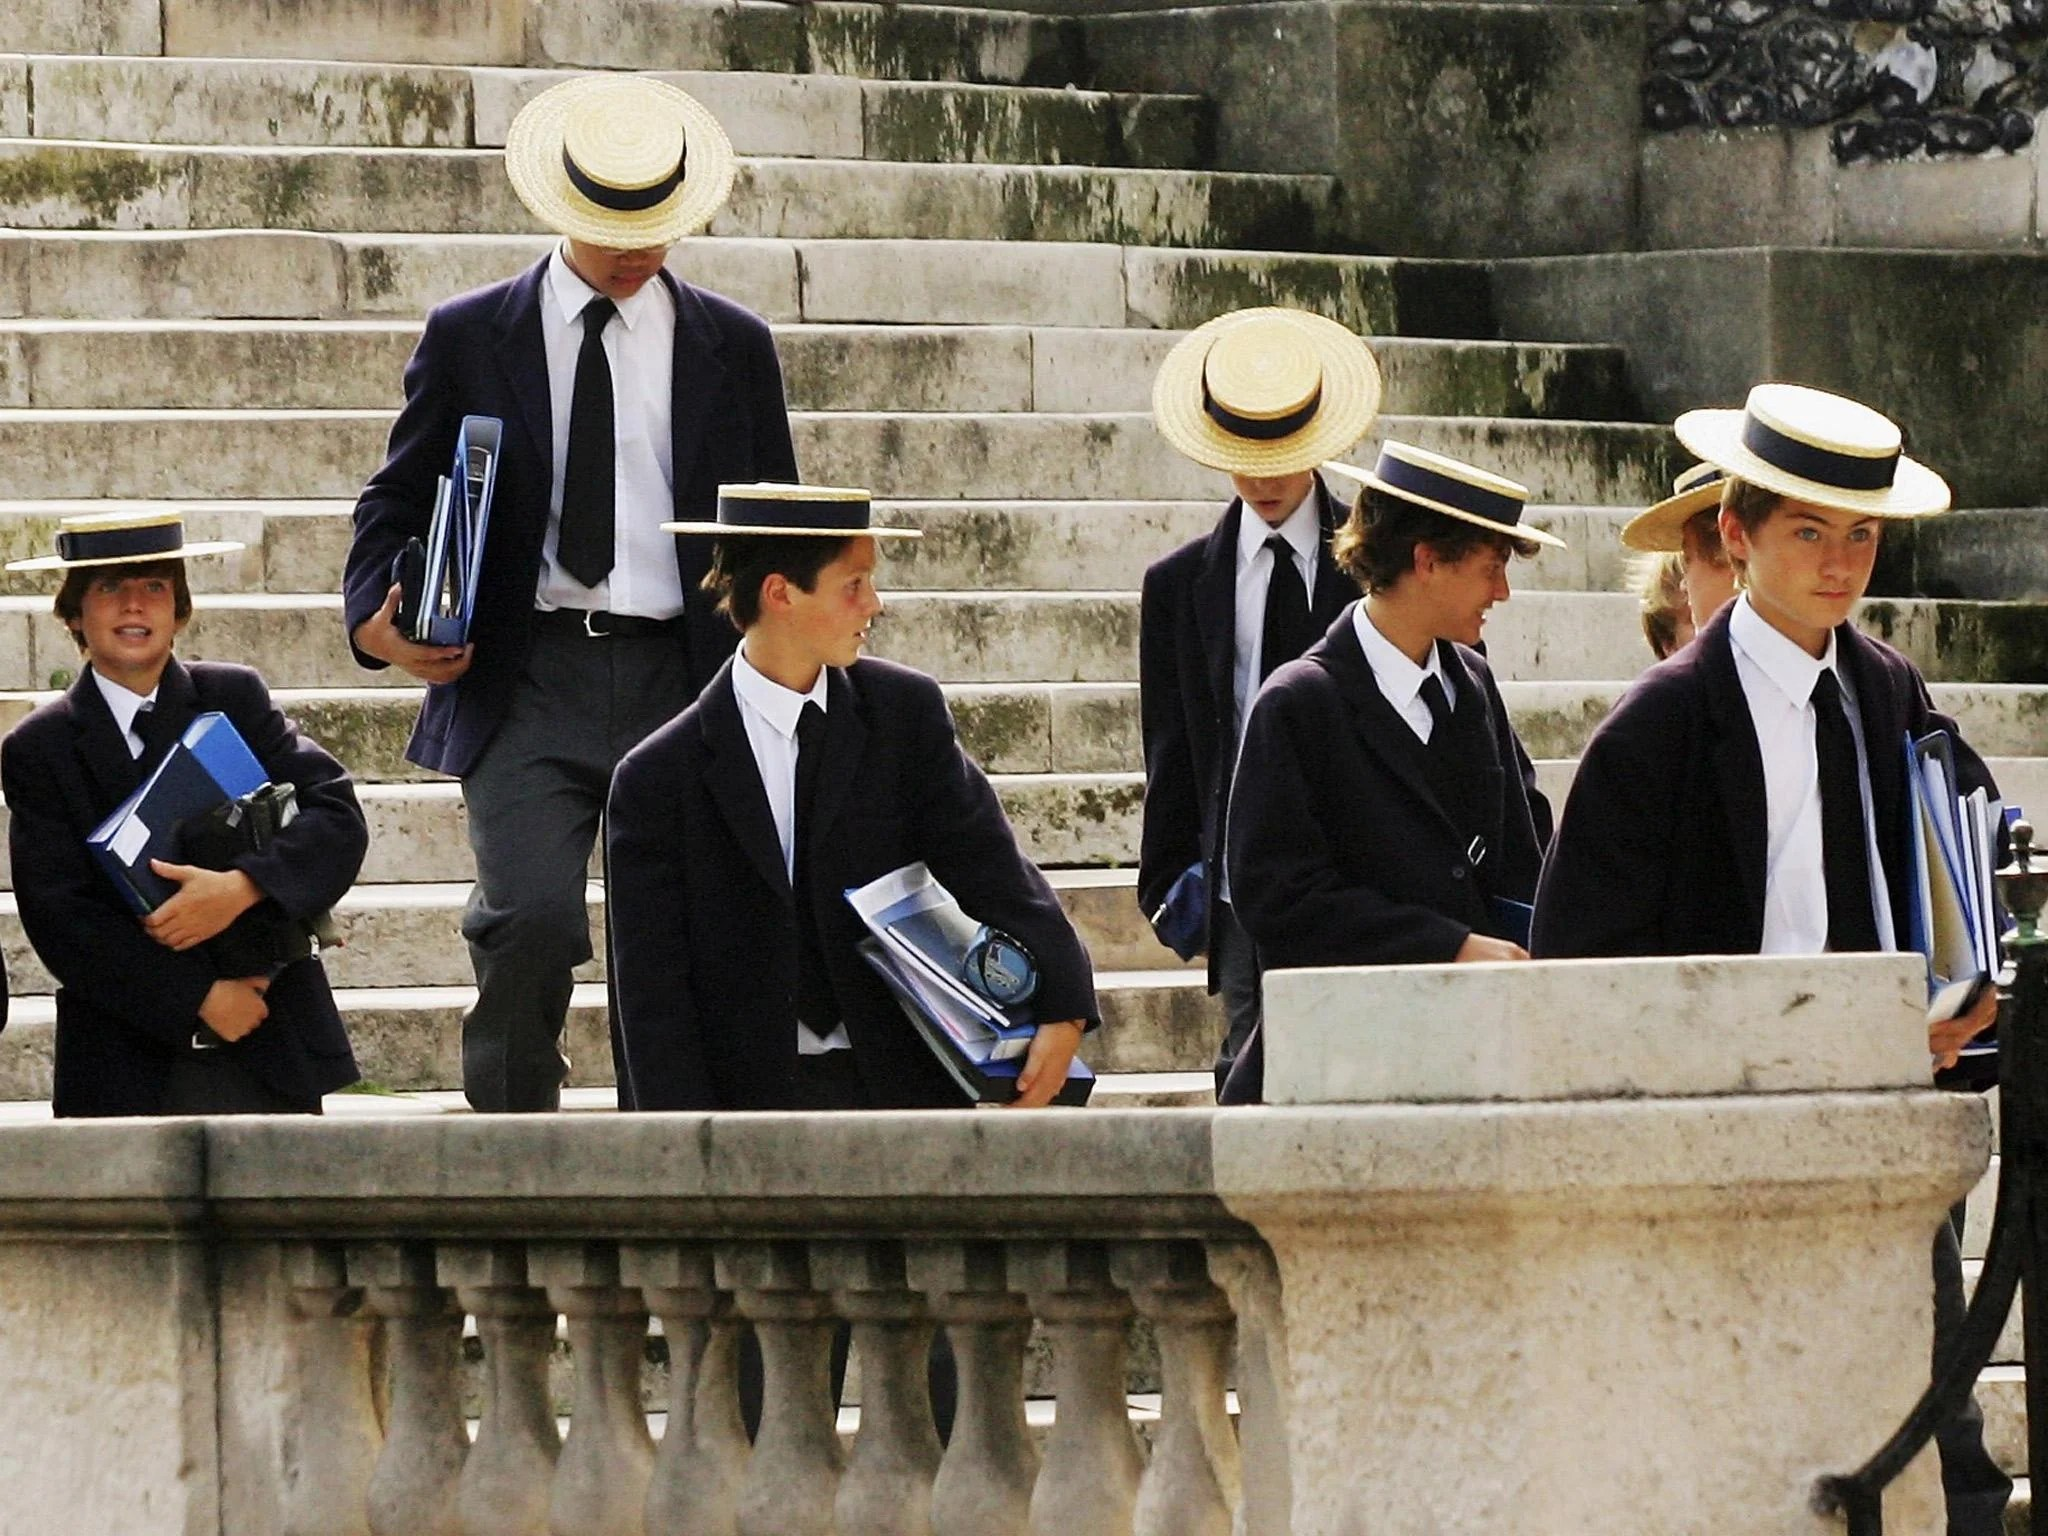 Privately educated people dominate top British jobs ...